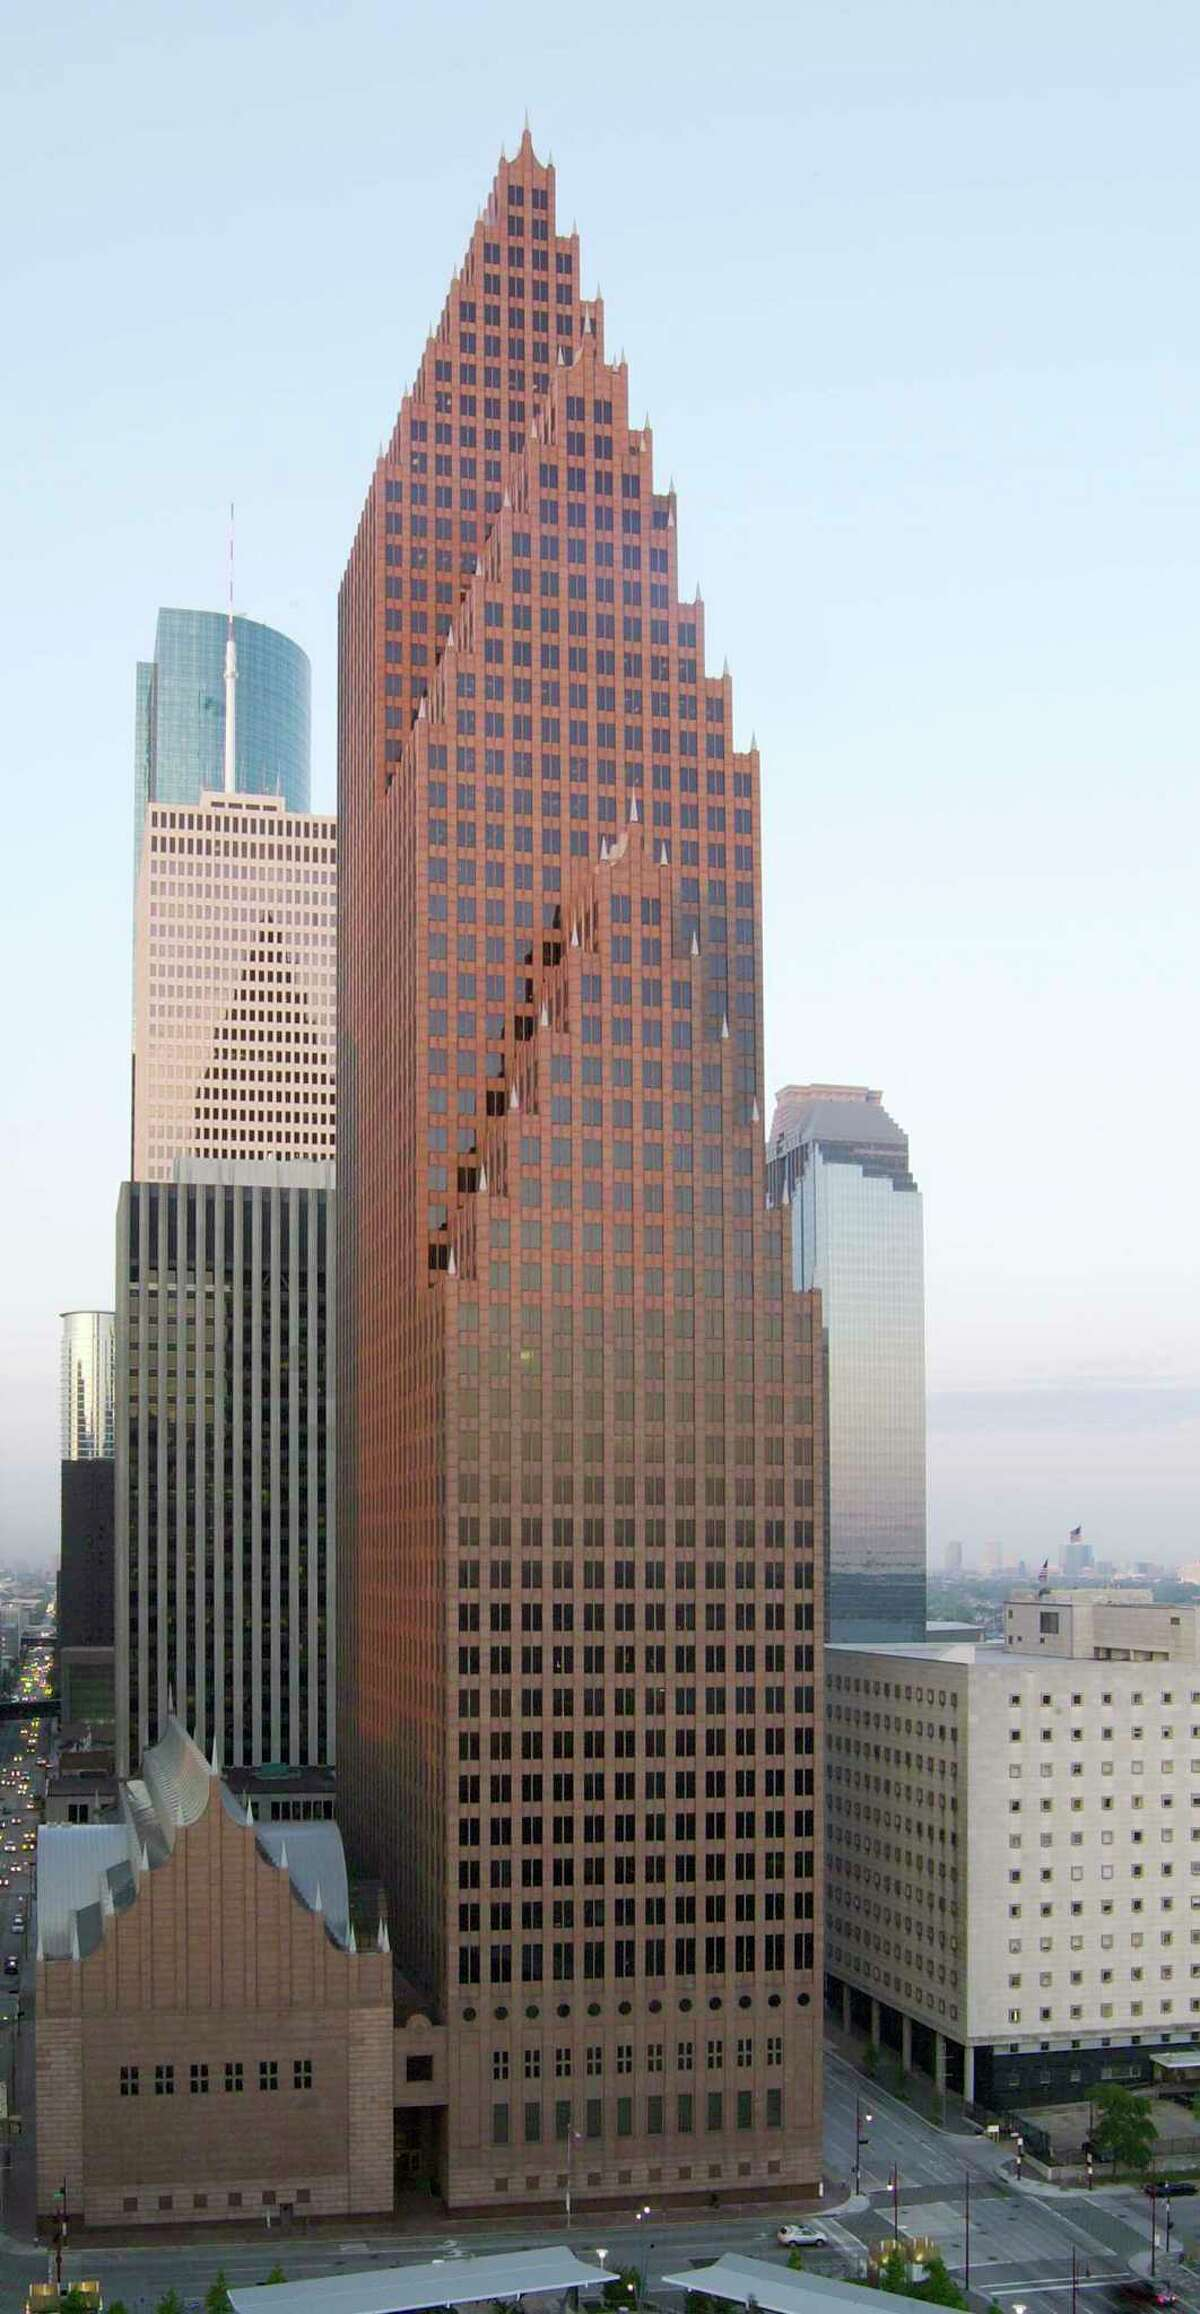 Houston's Bank of America Center was named the most beautiful building in Texas. >> See facts you probably didn't know about some of Houston's most iconicskyscrapers.